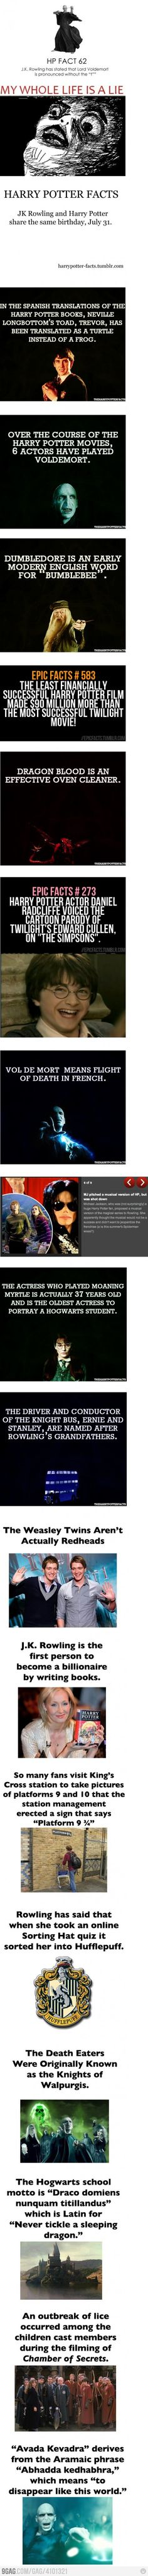 20 Facts You May Not Know About Harry Potter.